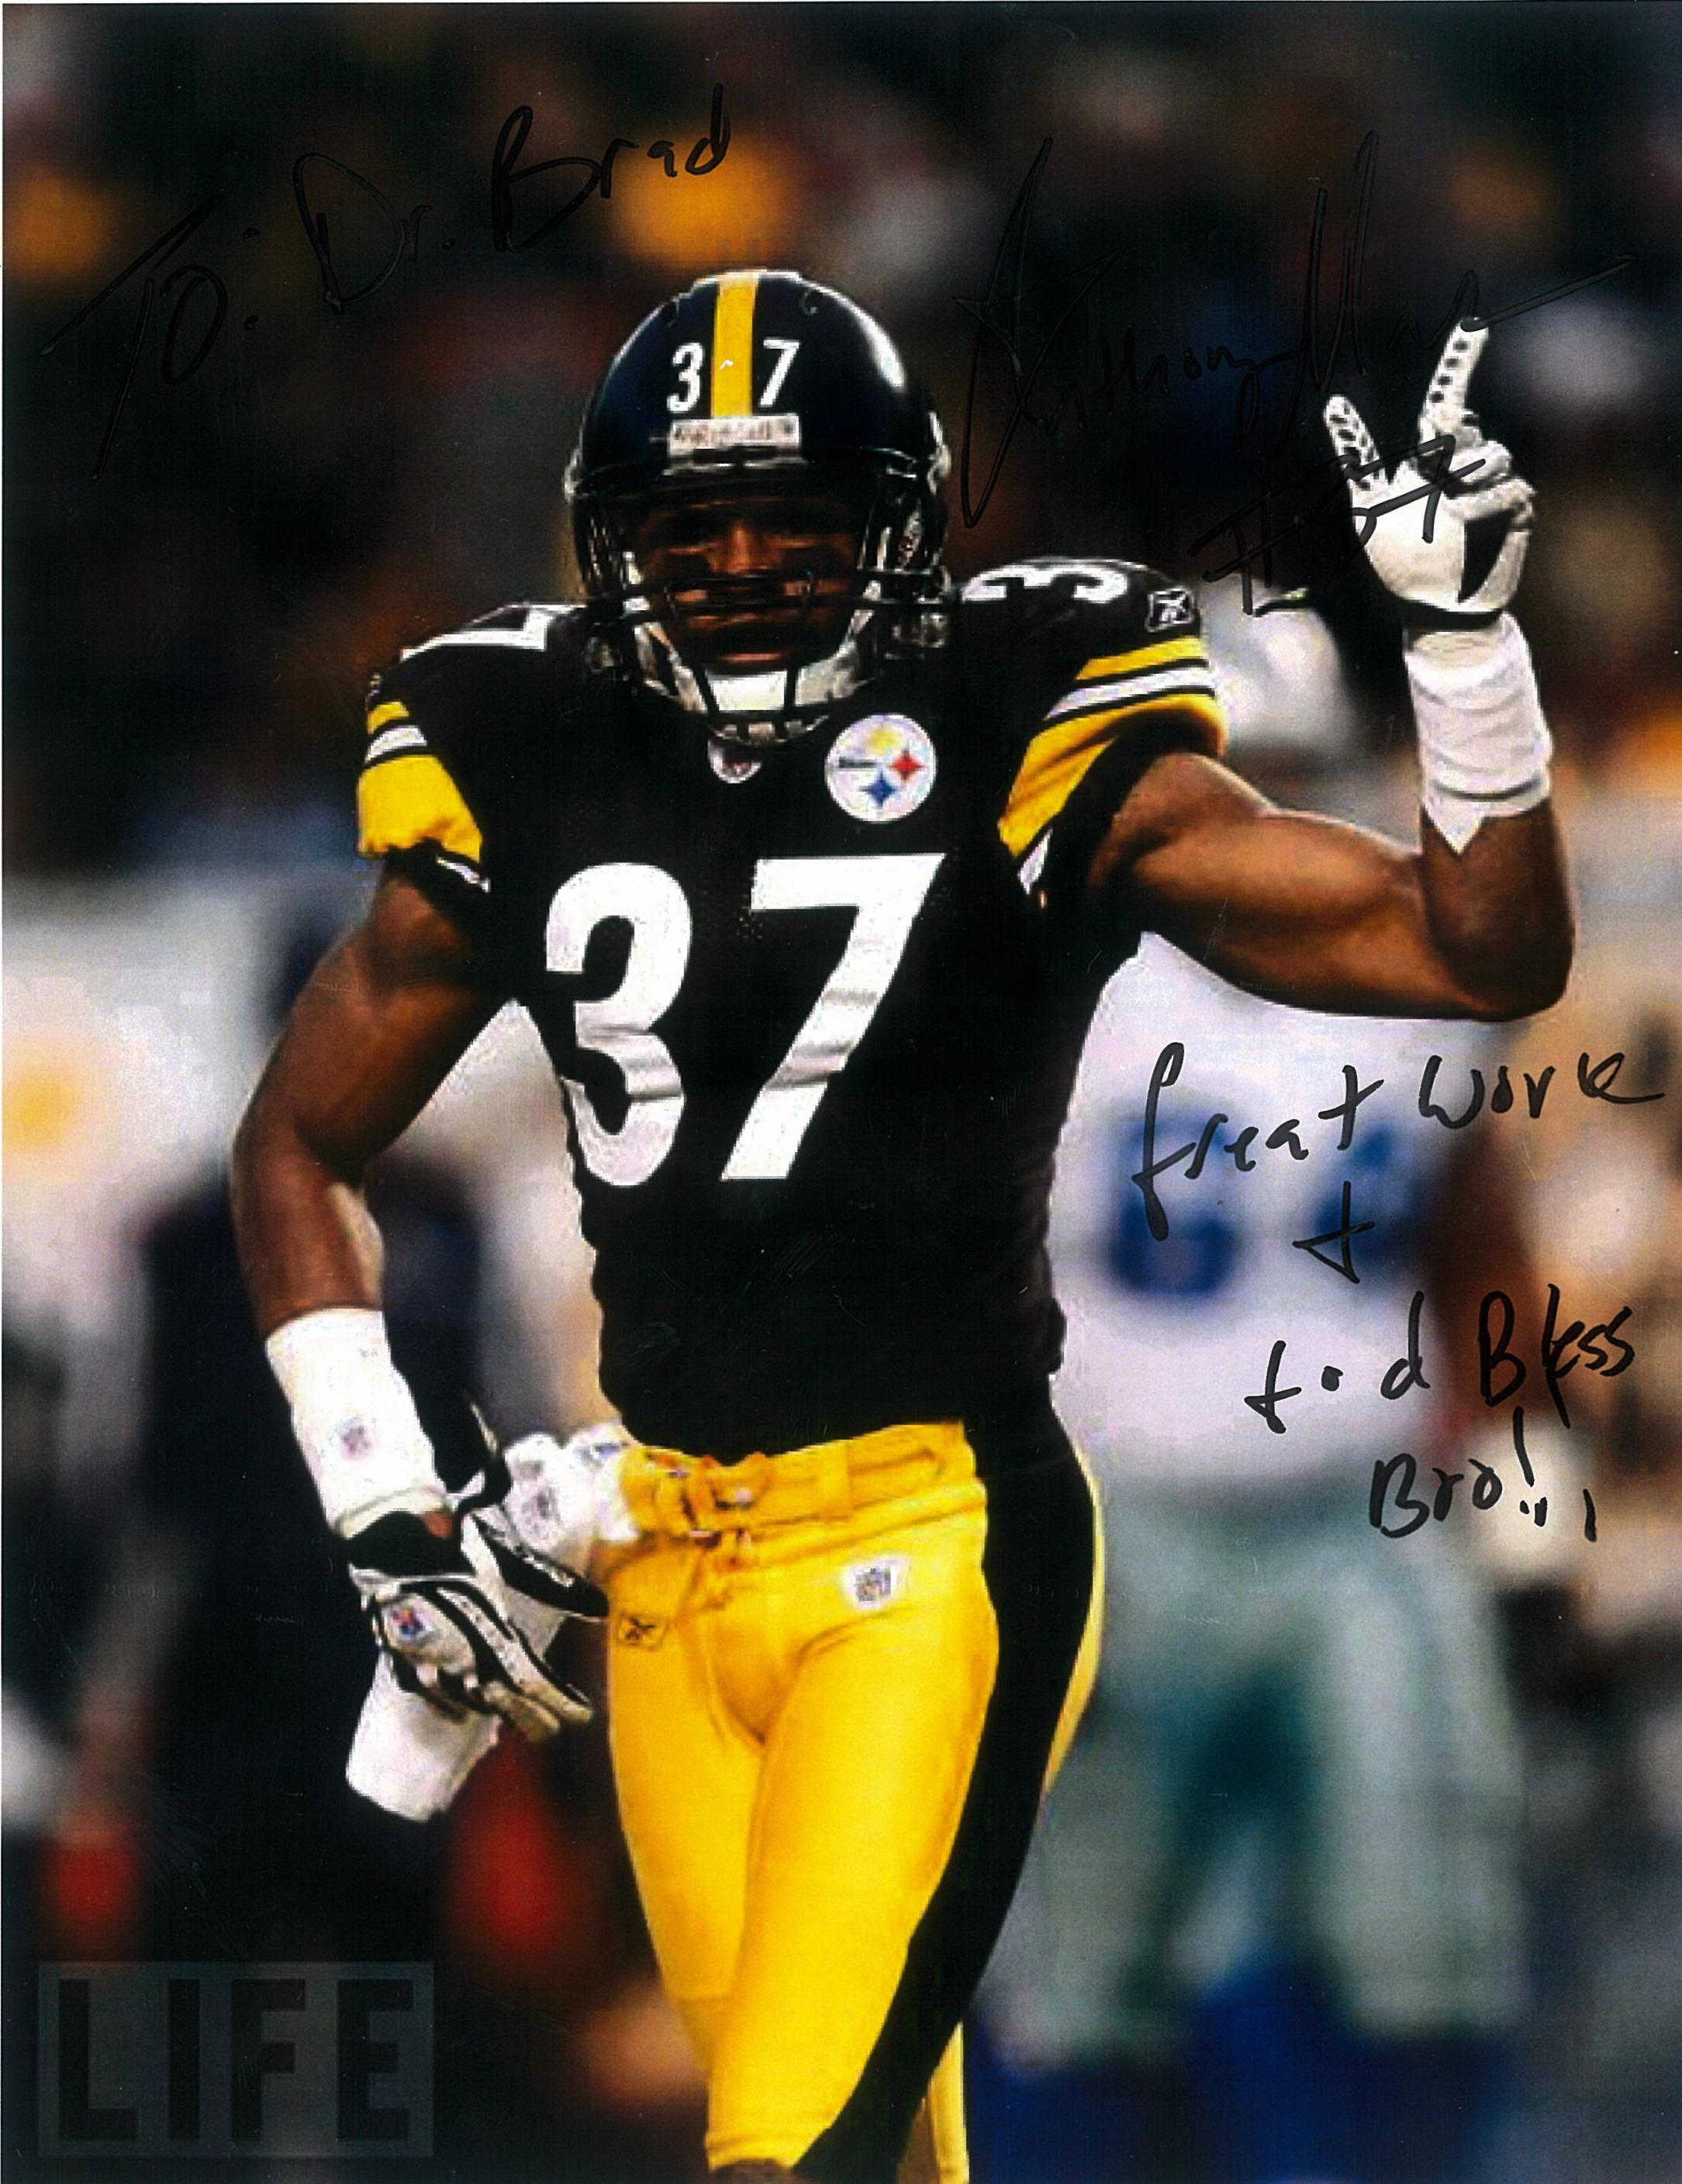 Anthony Madison, #37 Pittsburgh Steelers